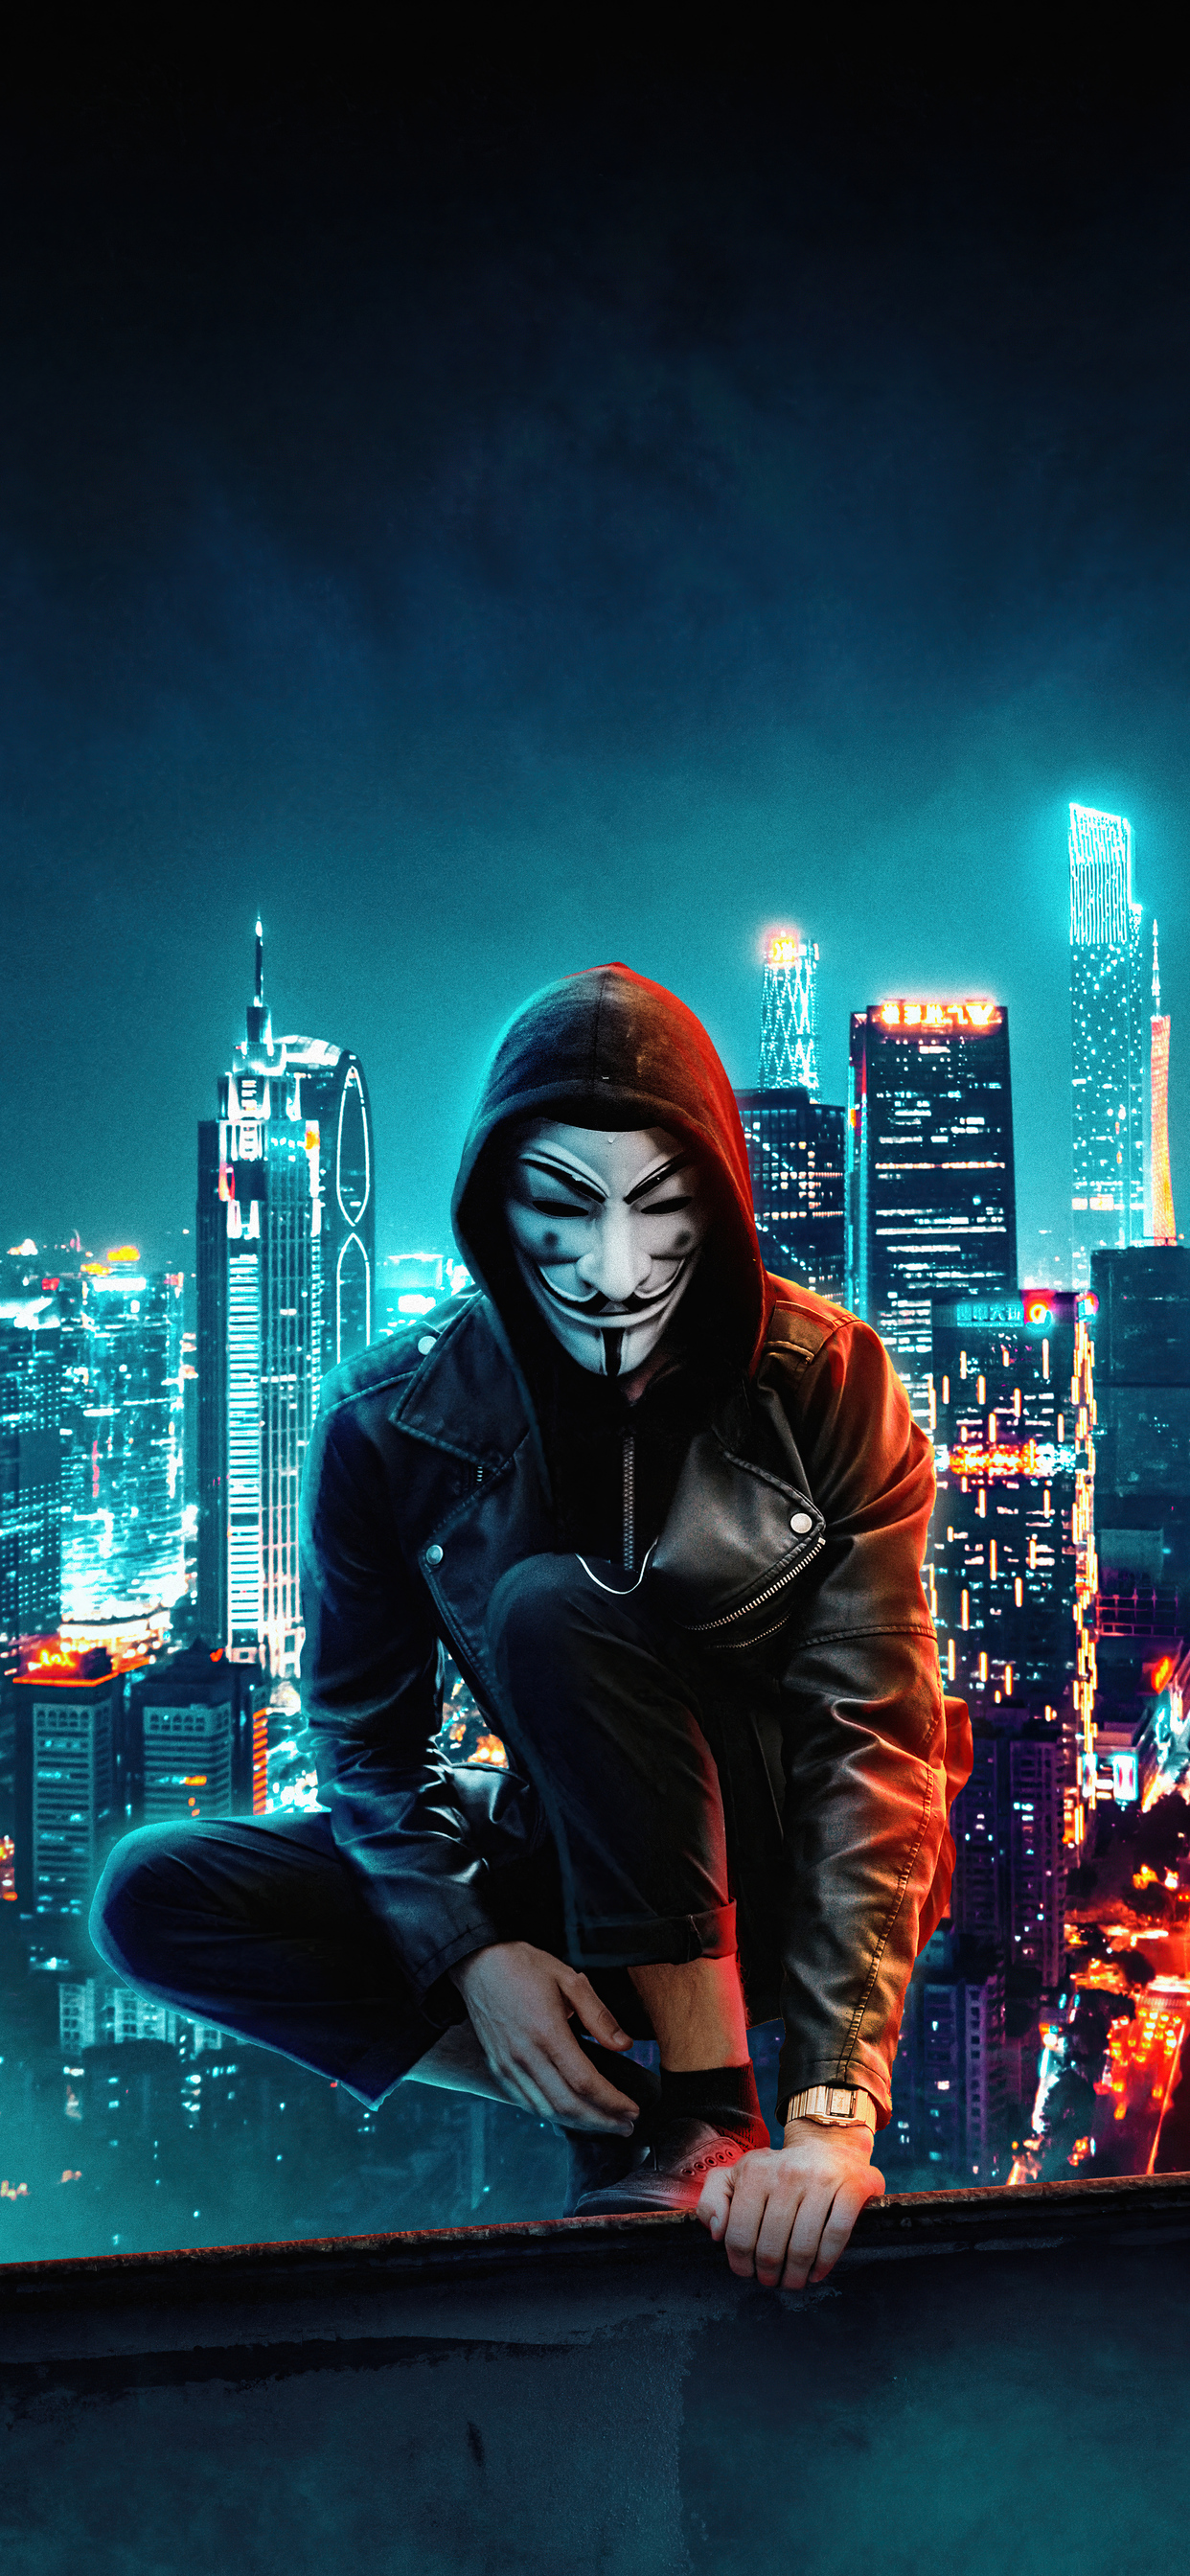 anonymus-mask-boy-rooftop-buildings-5k-hq.jpg